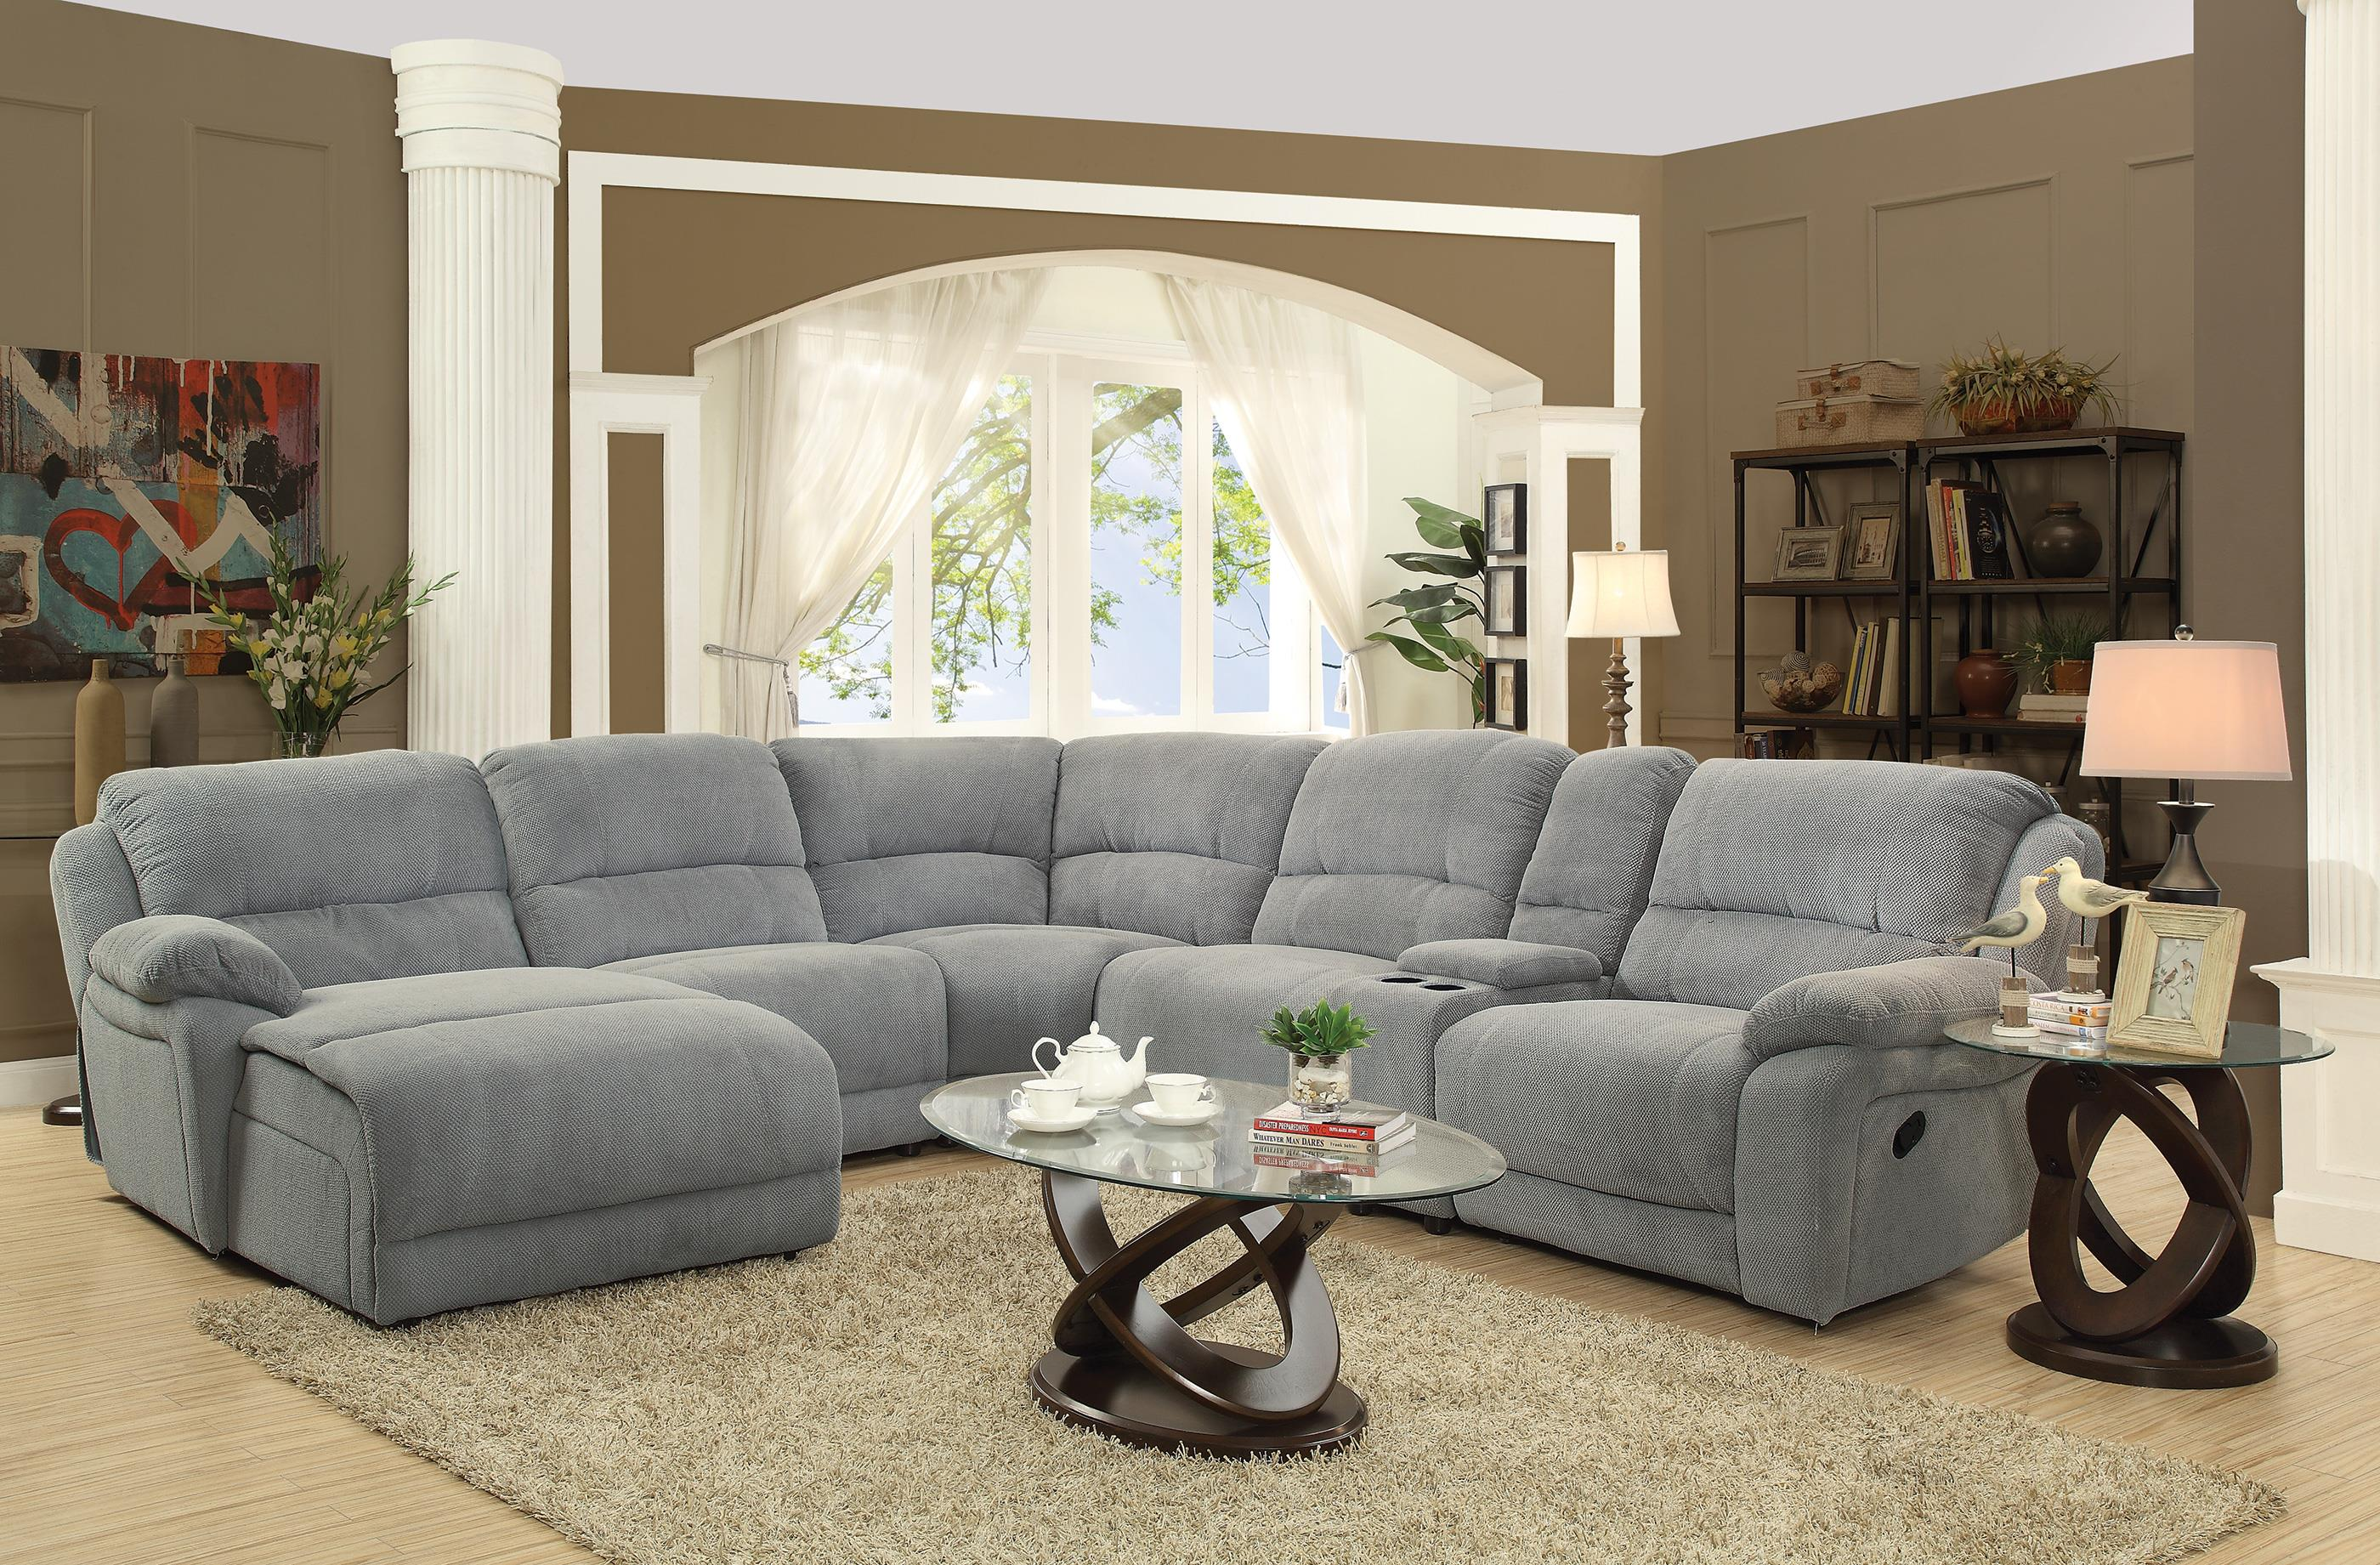 Coaster Mackenzie Silver Tone 6 Piece Reclining Sectional